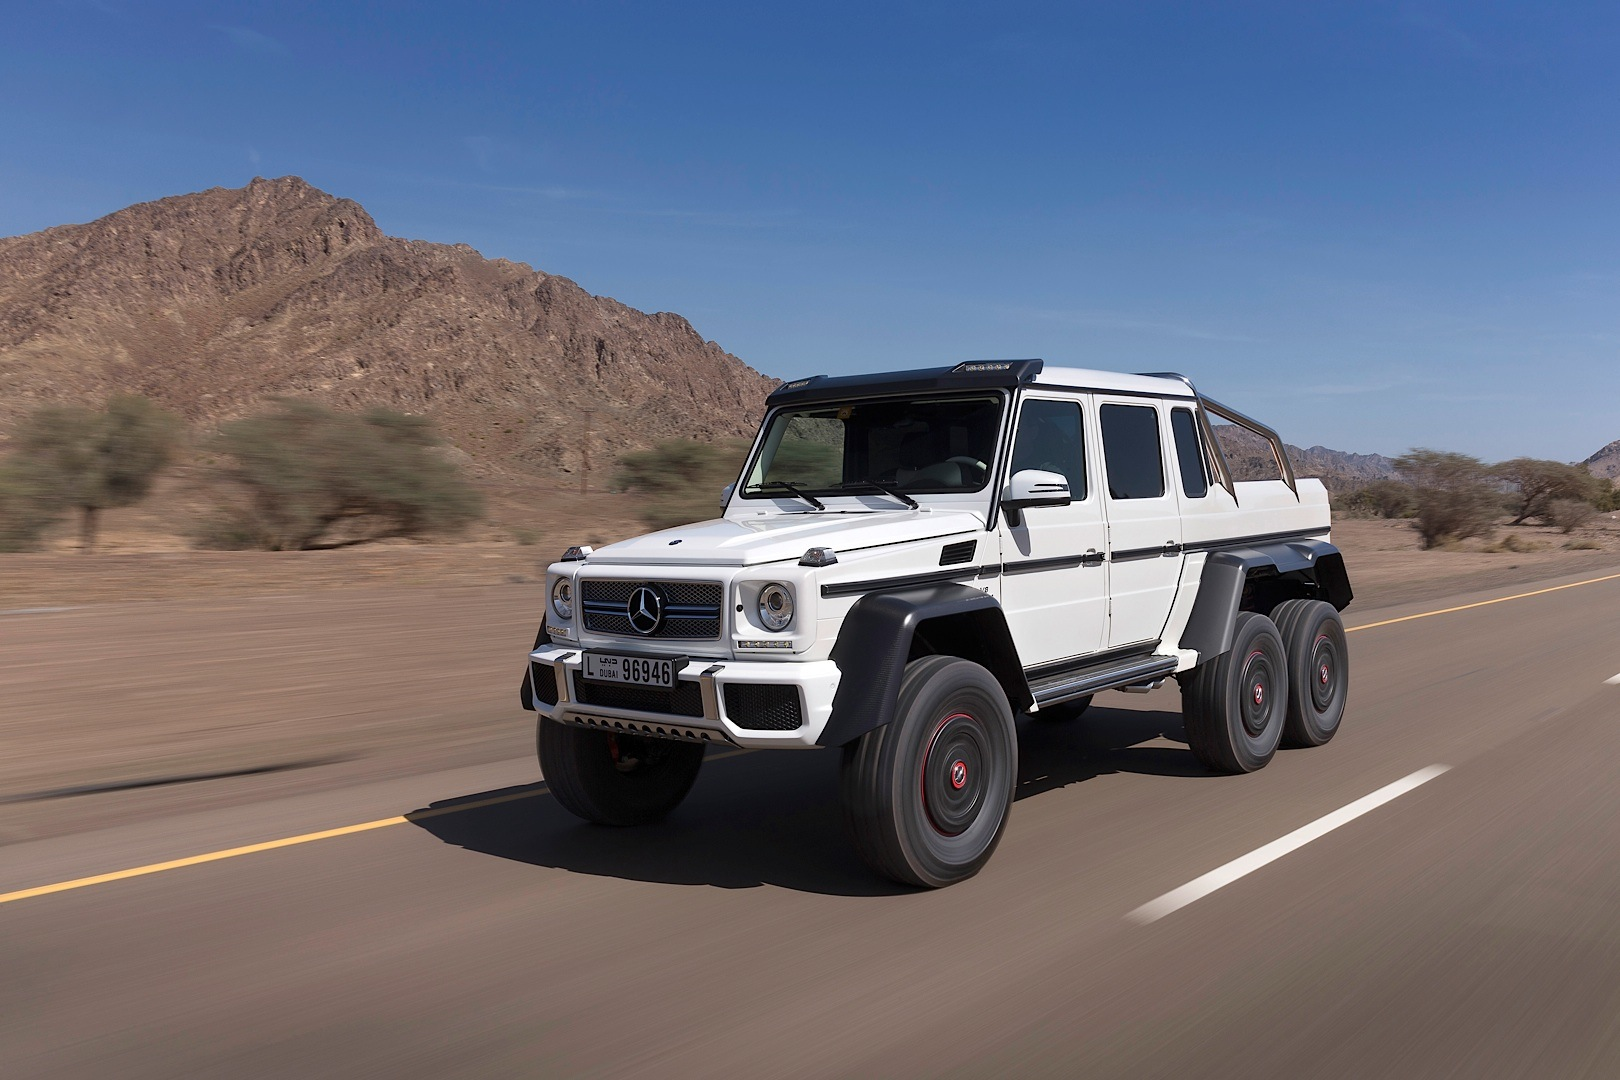 Armor Plated G 63 Amg 6x6 Ready For The Zombie Apocalypse Autoevolution